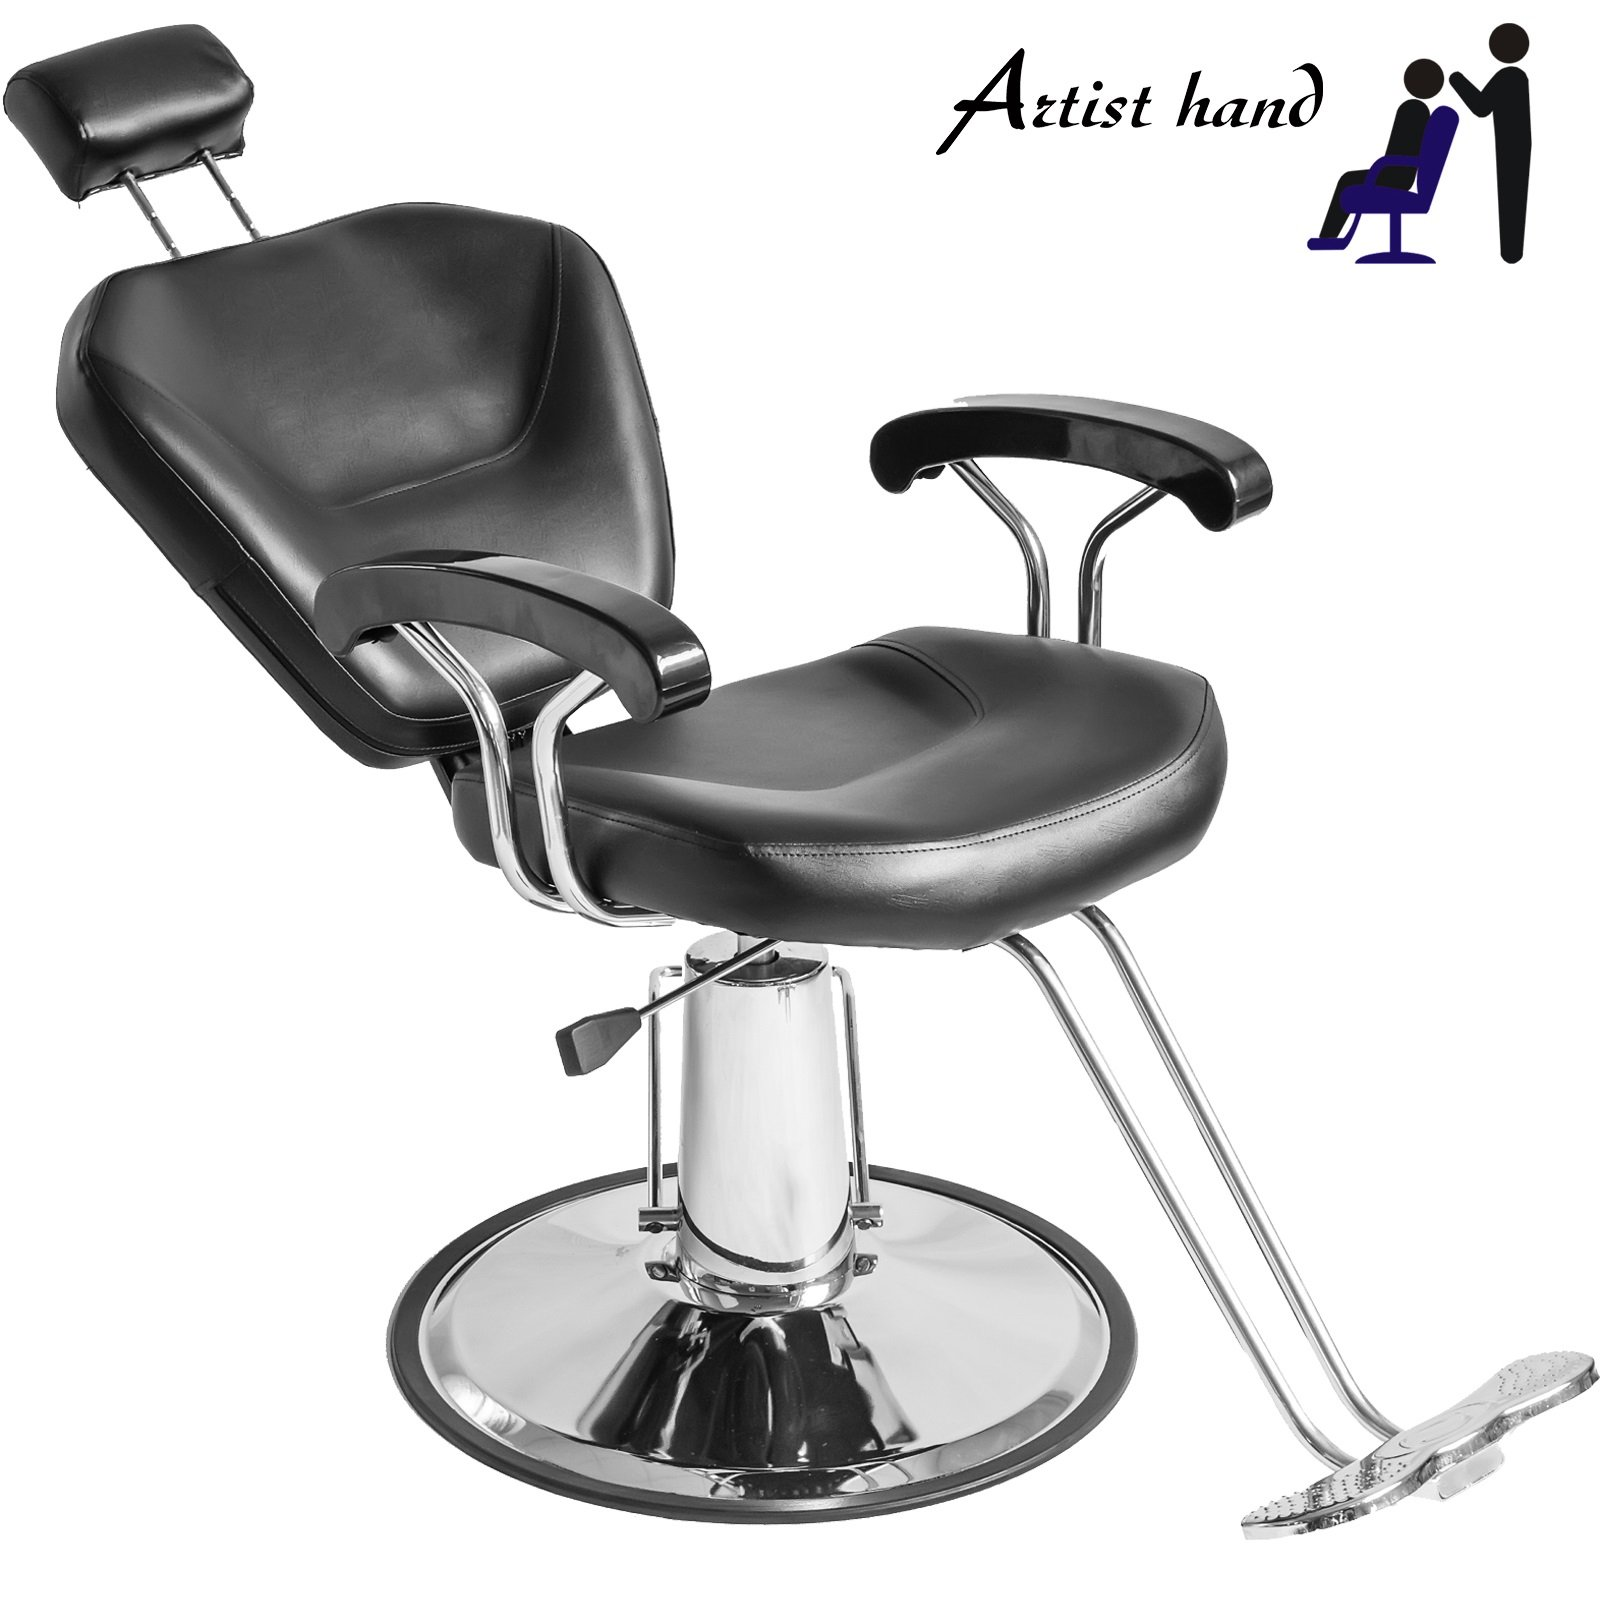 Artist Hand 20'' Wide All Purpose Hydraulic Barber Chair Salon Spa Styling Equipment